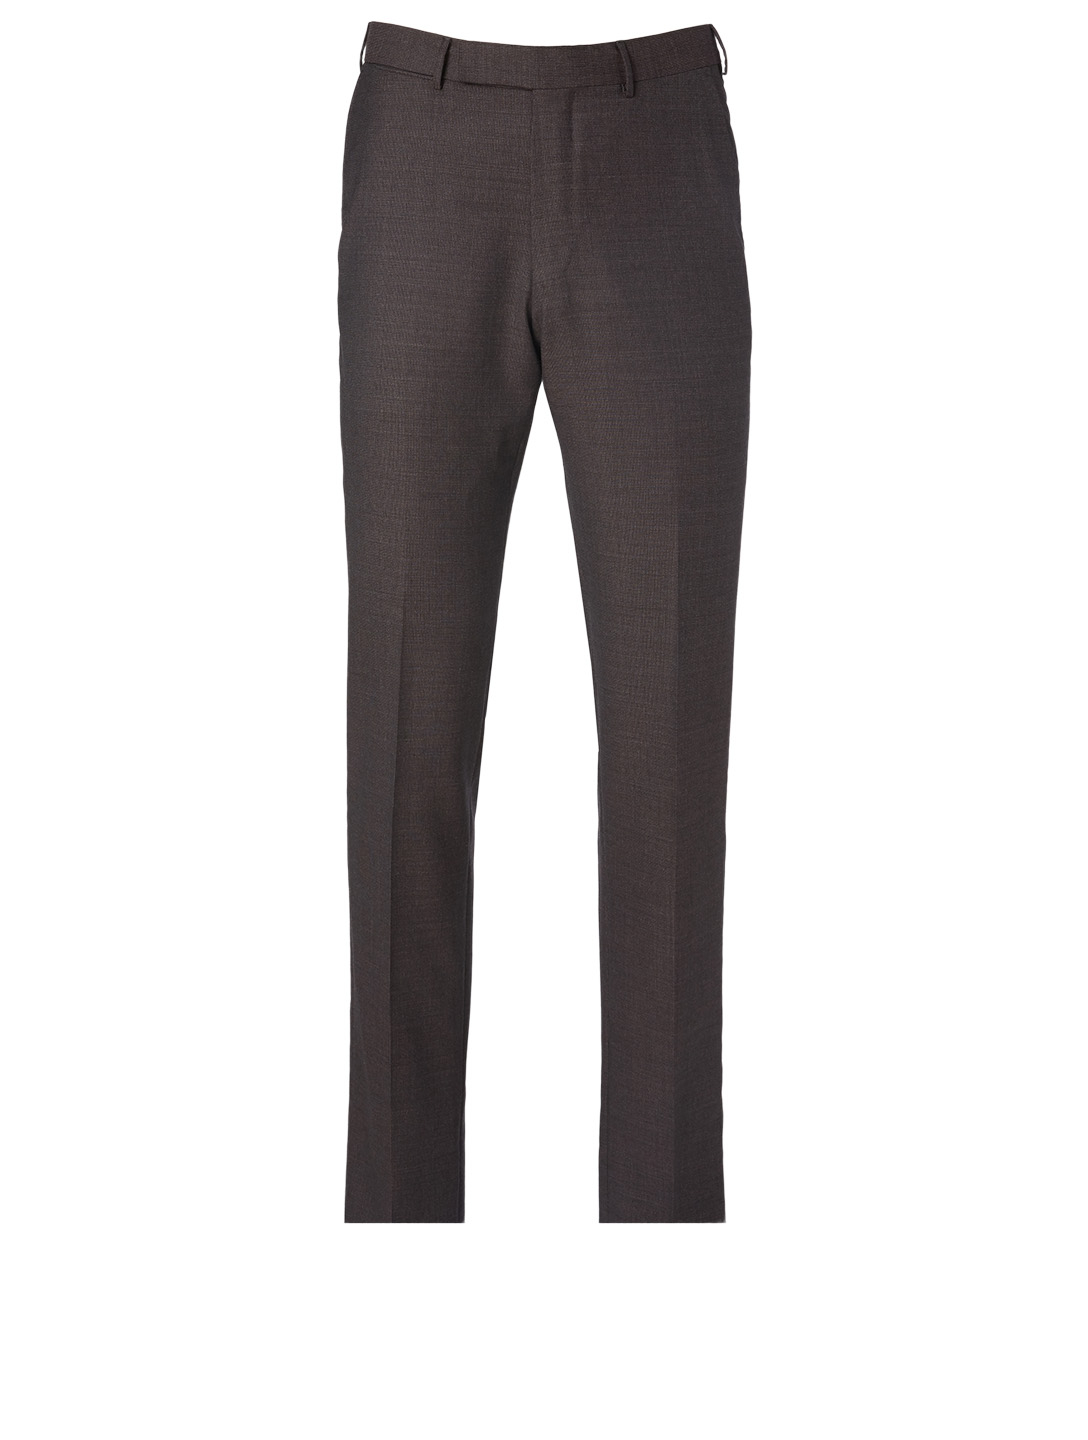 ERMENEGILDO ZEGNA Wool Pants Men's Purple